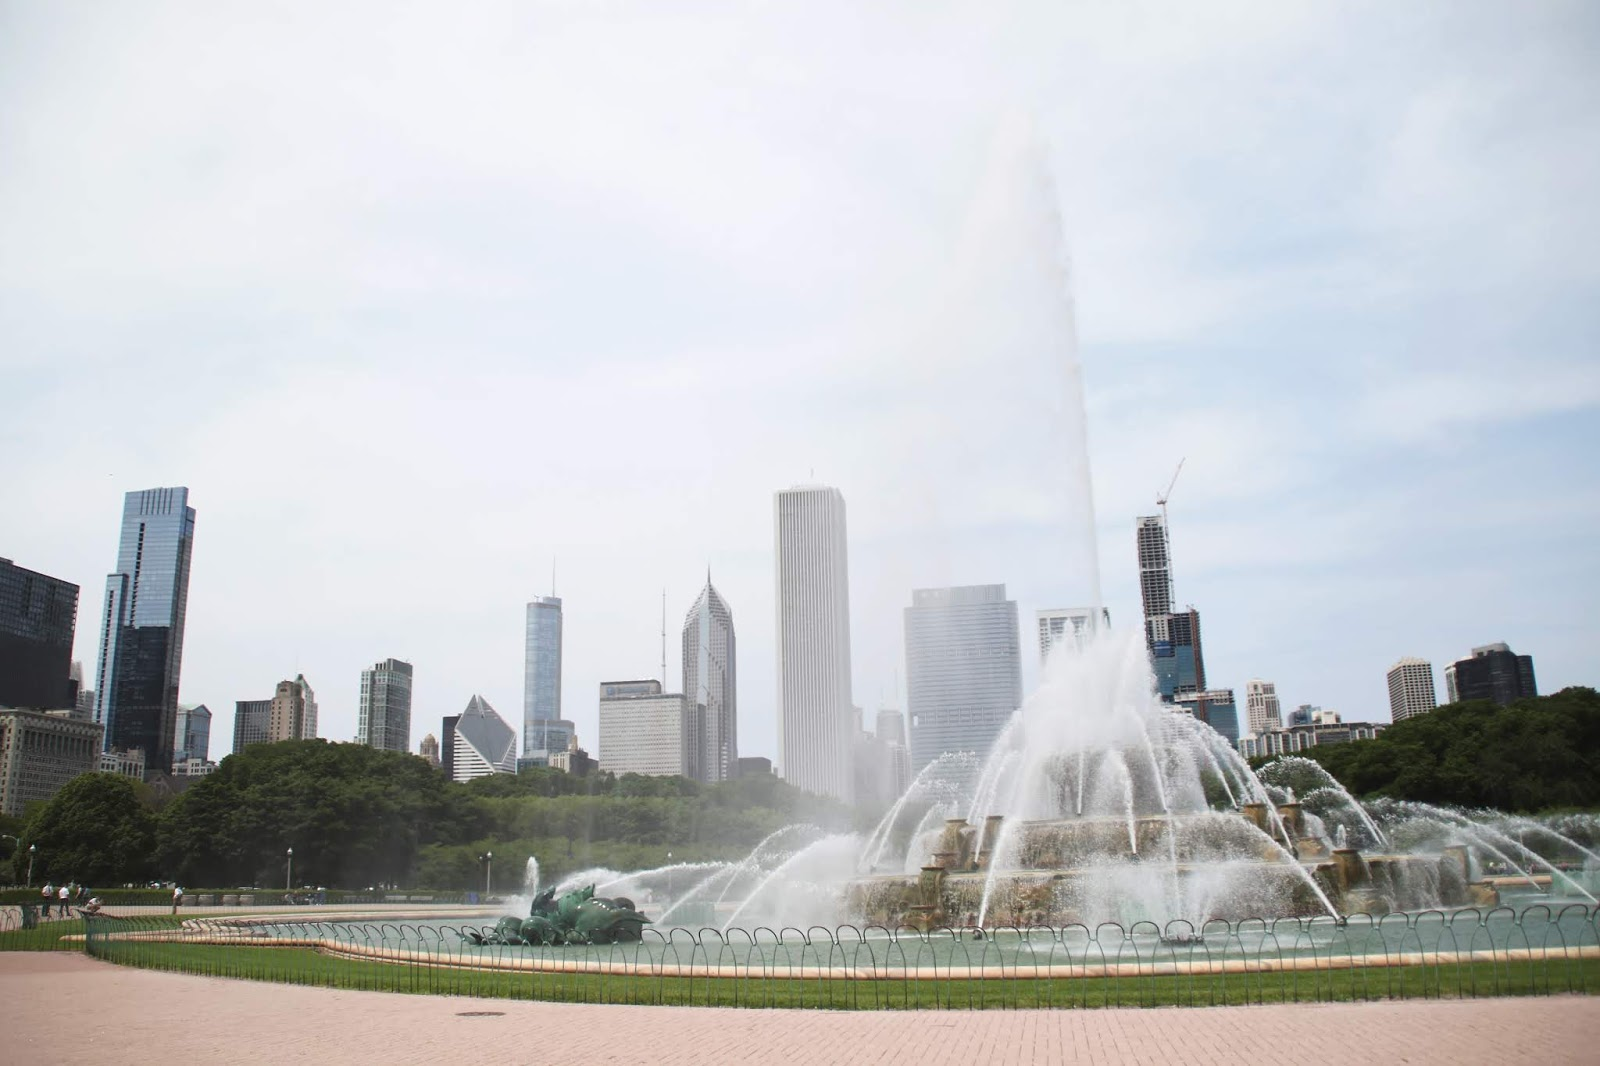 Grant Park Chicago, exploring Chicago, Buckingham Fountain Chicago, Central Park Chicago, Chicago's Backyard